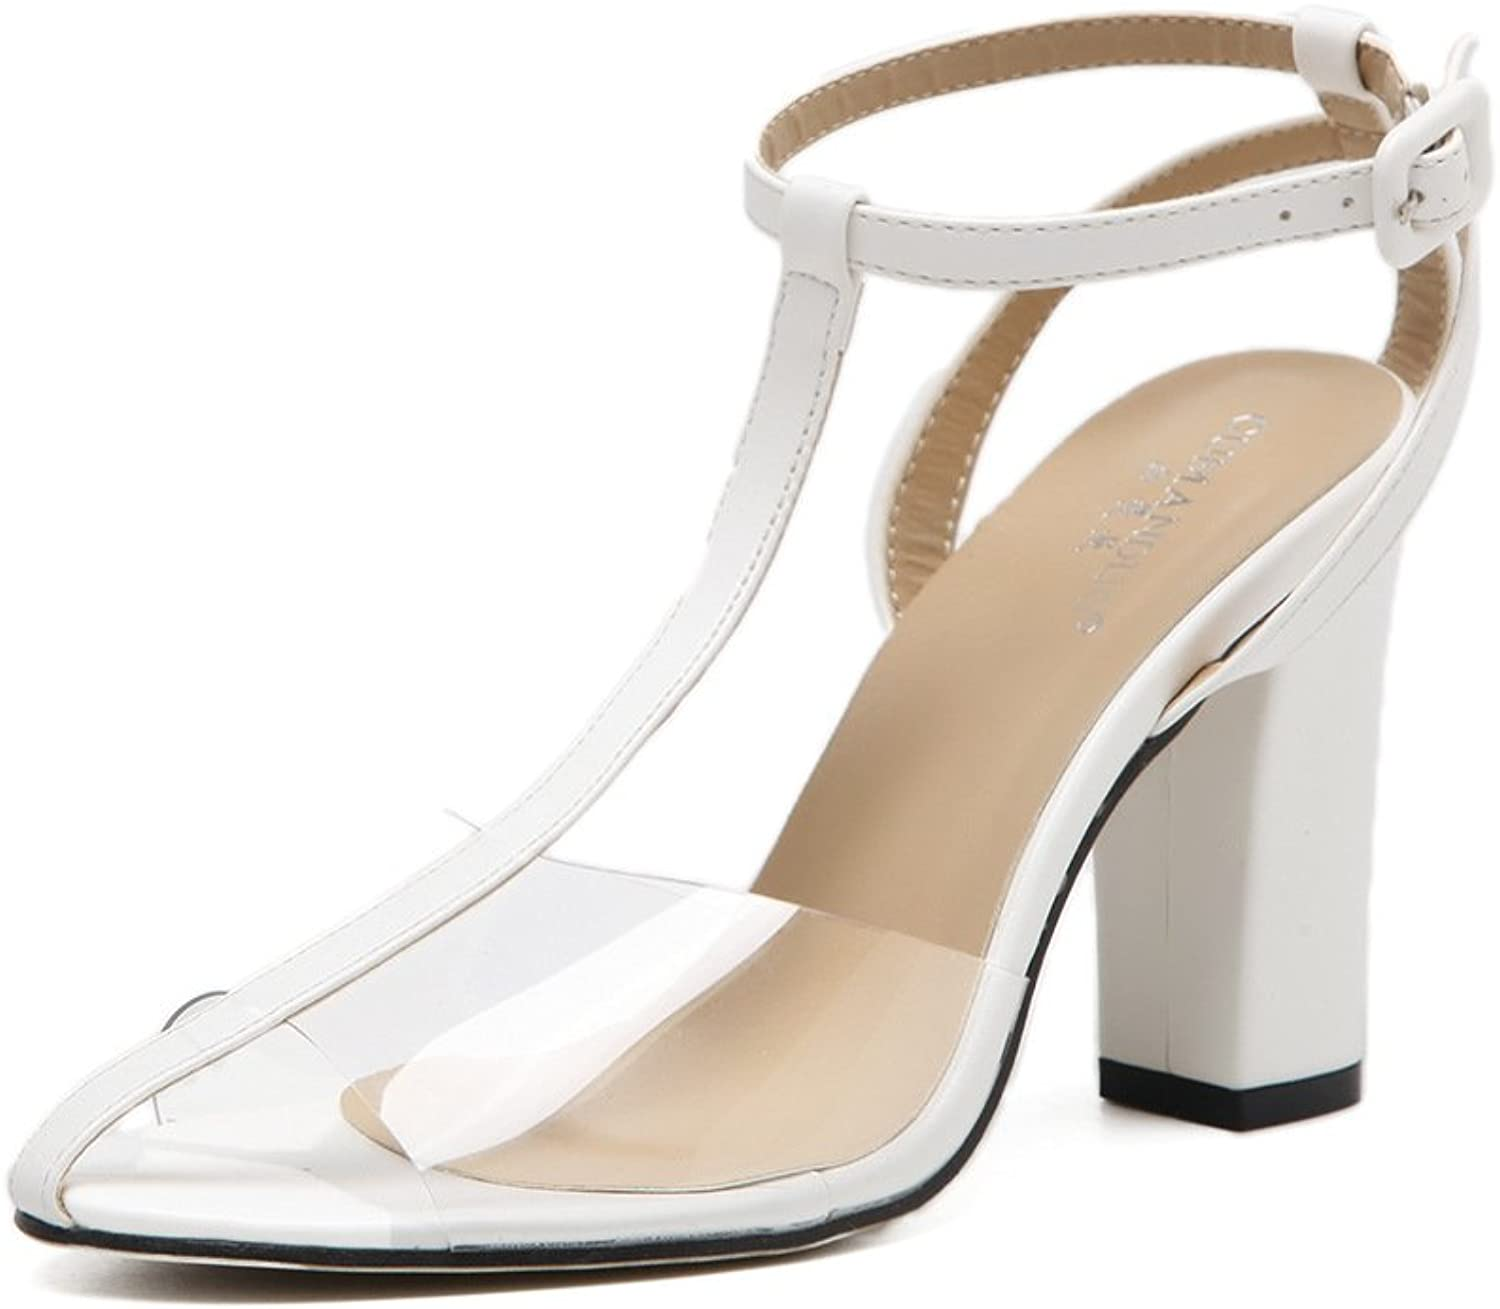 RUGAI-UE High heeled shoes, European and American toes, sandals and thick sandals.